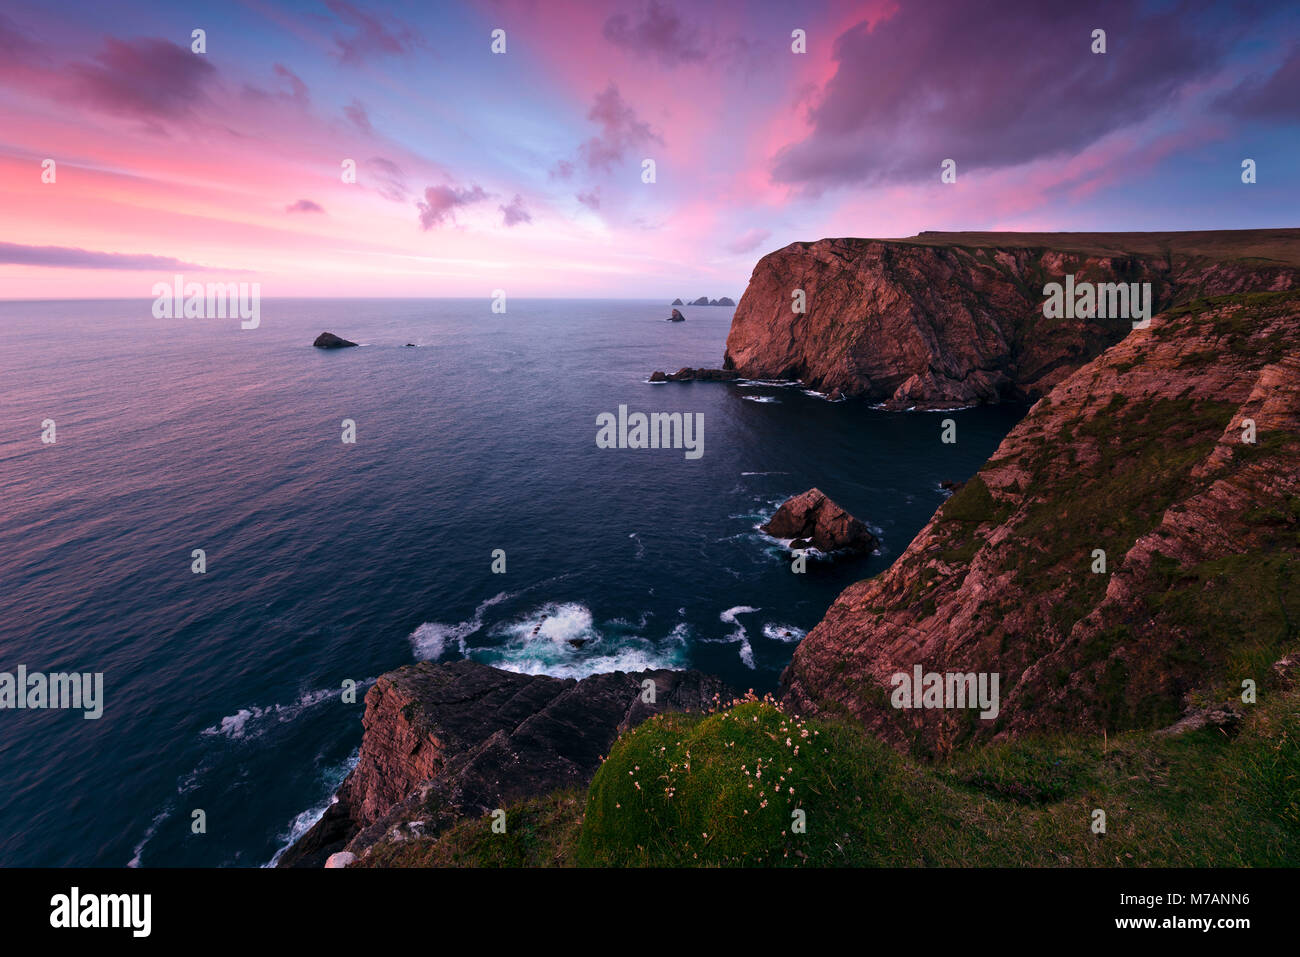 Colored sunset at Benwee Head, County Mayo, Ireland - Stock Image